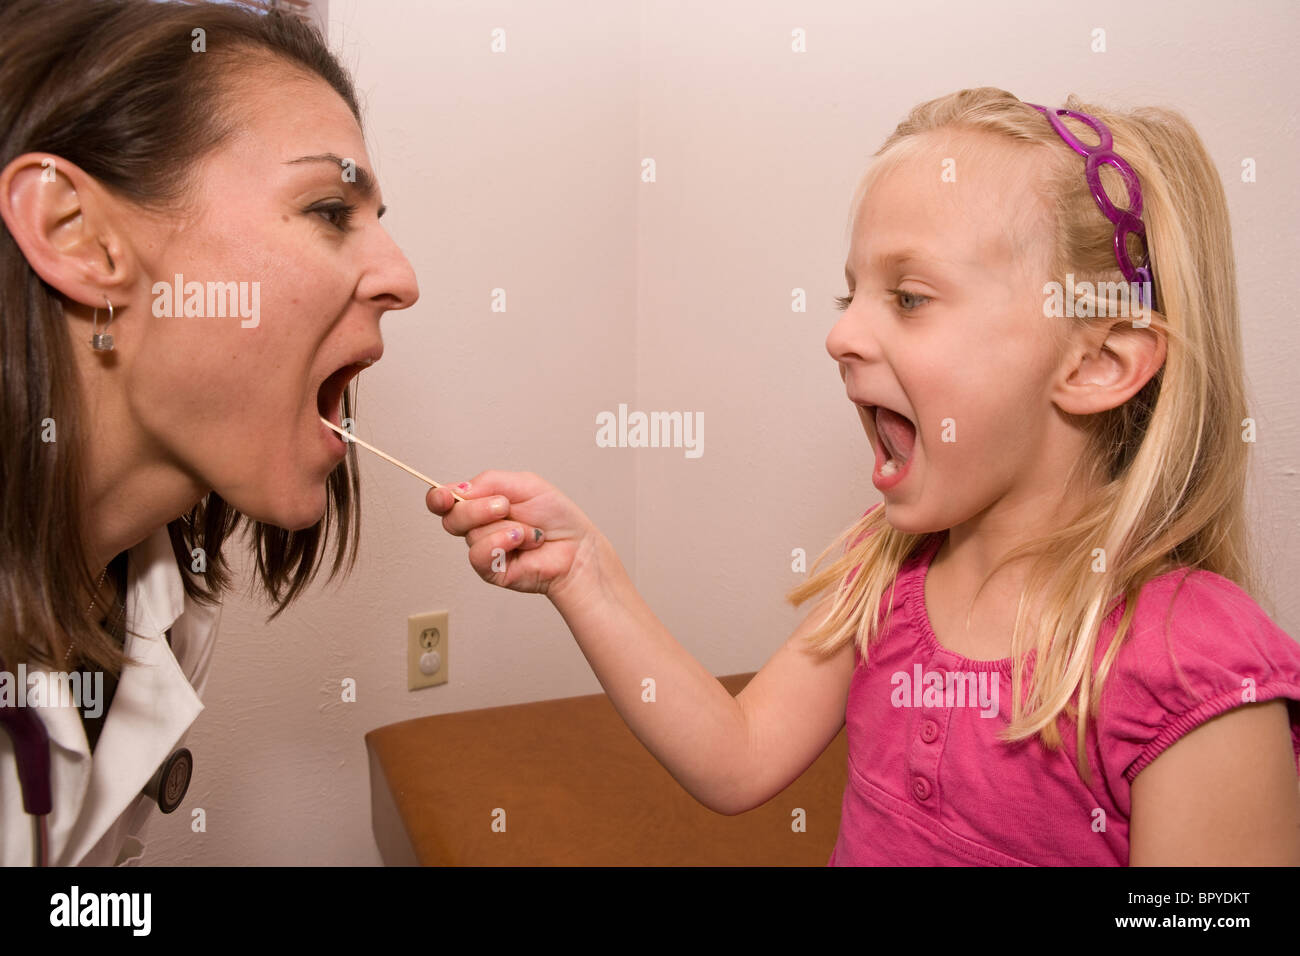 child looks into doctor's mouth with a tongue depressor, reversing roles, looking at tonsil - Stock Image